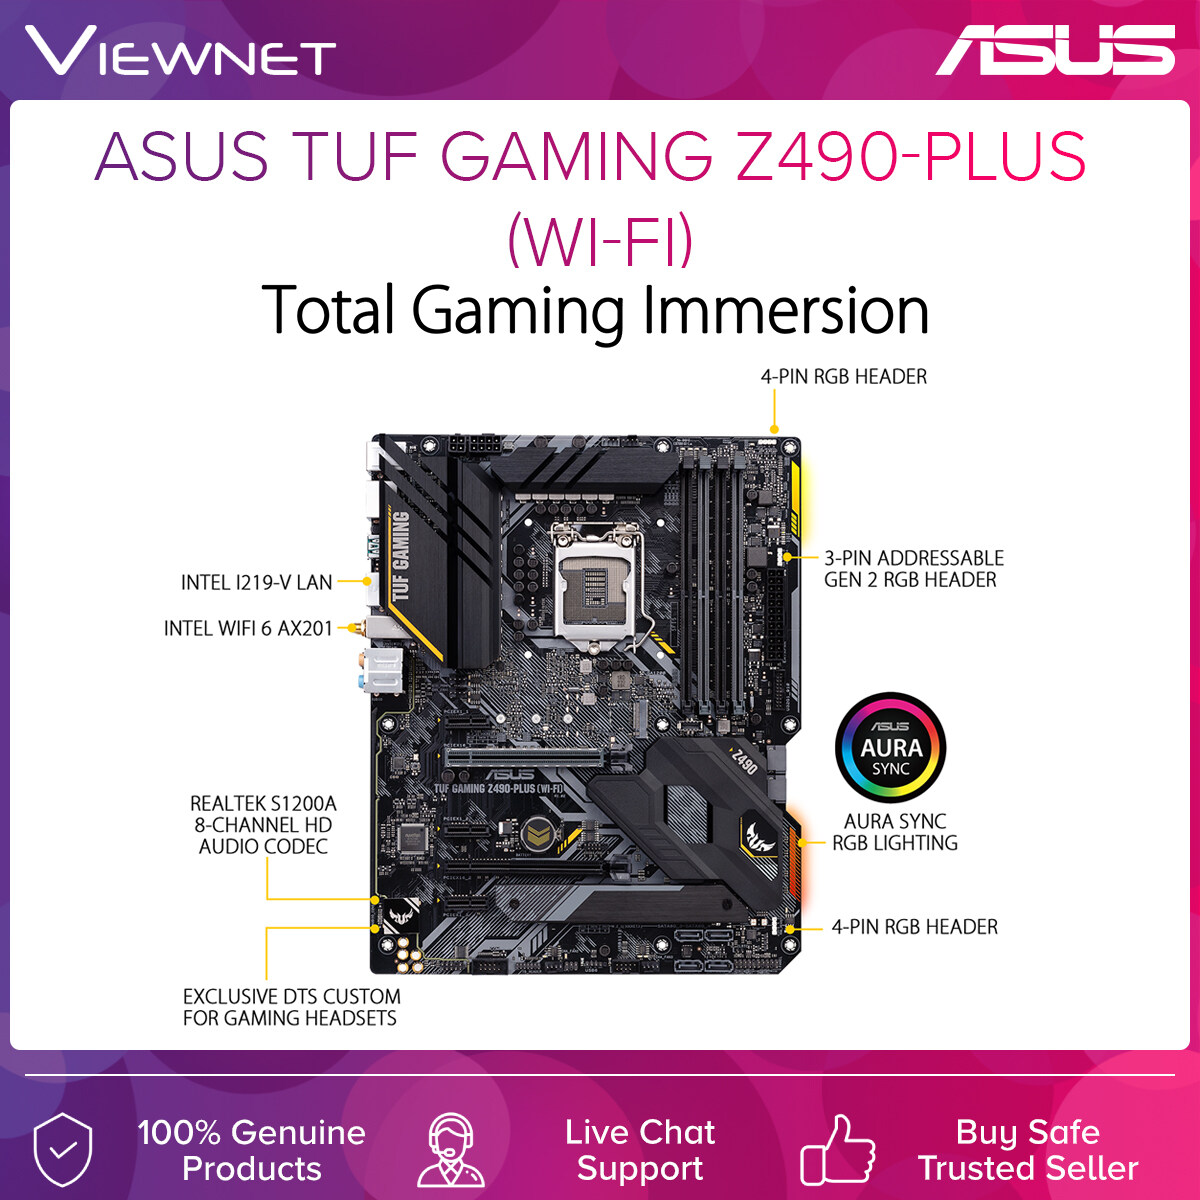 Asus TUF Gaming Z490-Plus (WiFi) ntel® Z490 (LGA 1200) ATX gaming motherboard with M.2, 14 DrMOS power stages, Intel® WiFi 6, HDMI, DisplayPort, SATA 6 Gbps, USB 3.2 Gen 2 ports, Thunderbolt™ 3 support, and Aura Sync RGB lighting